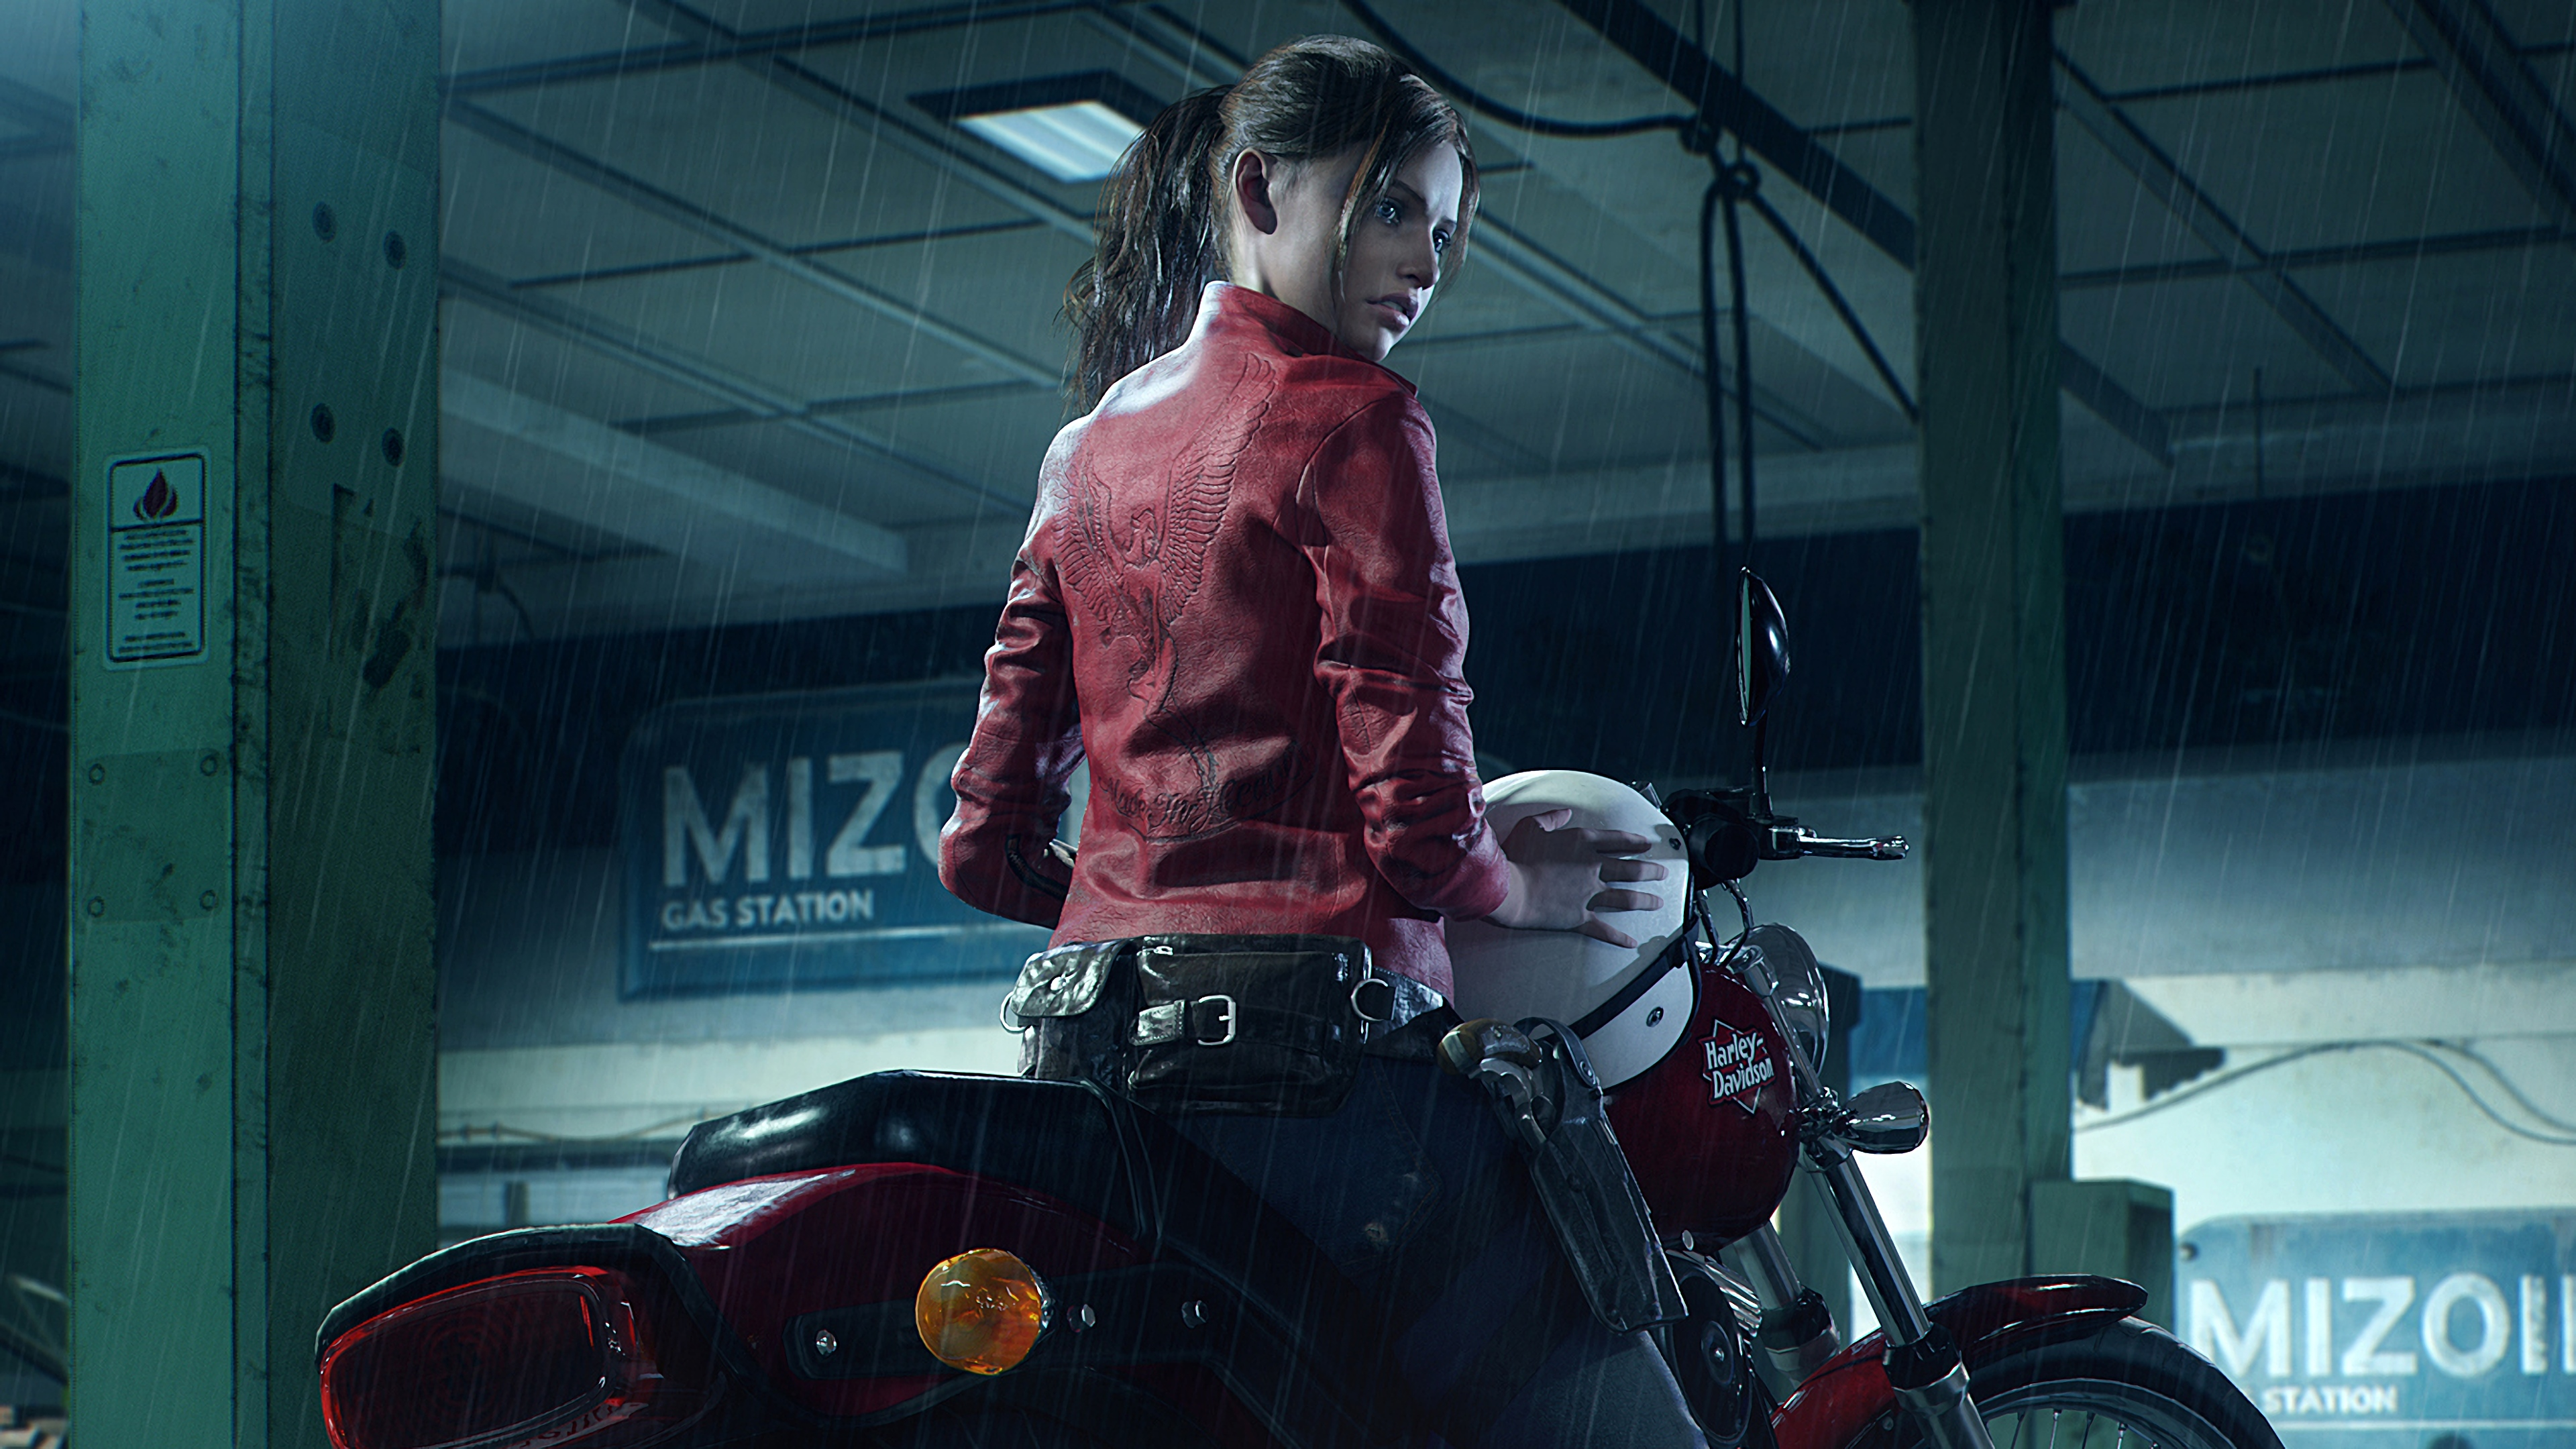 2048x1152 Resident Evil 2 2019 Claire Redfield Harley